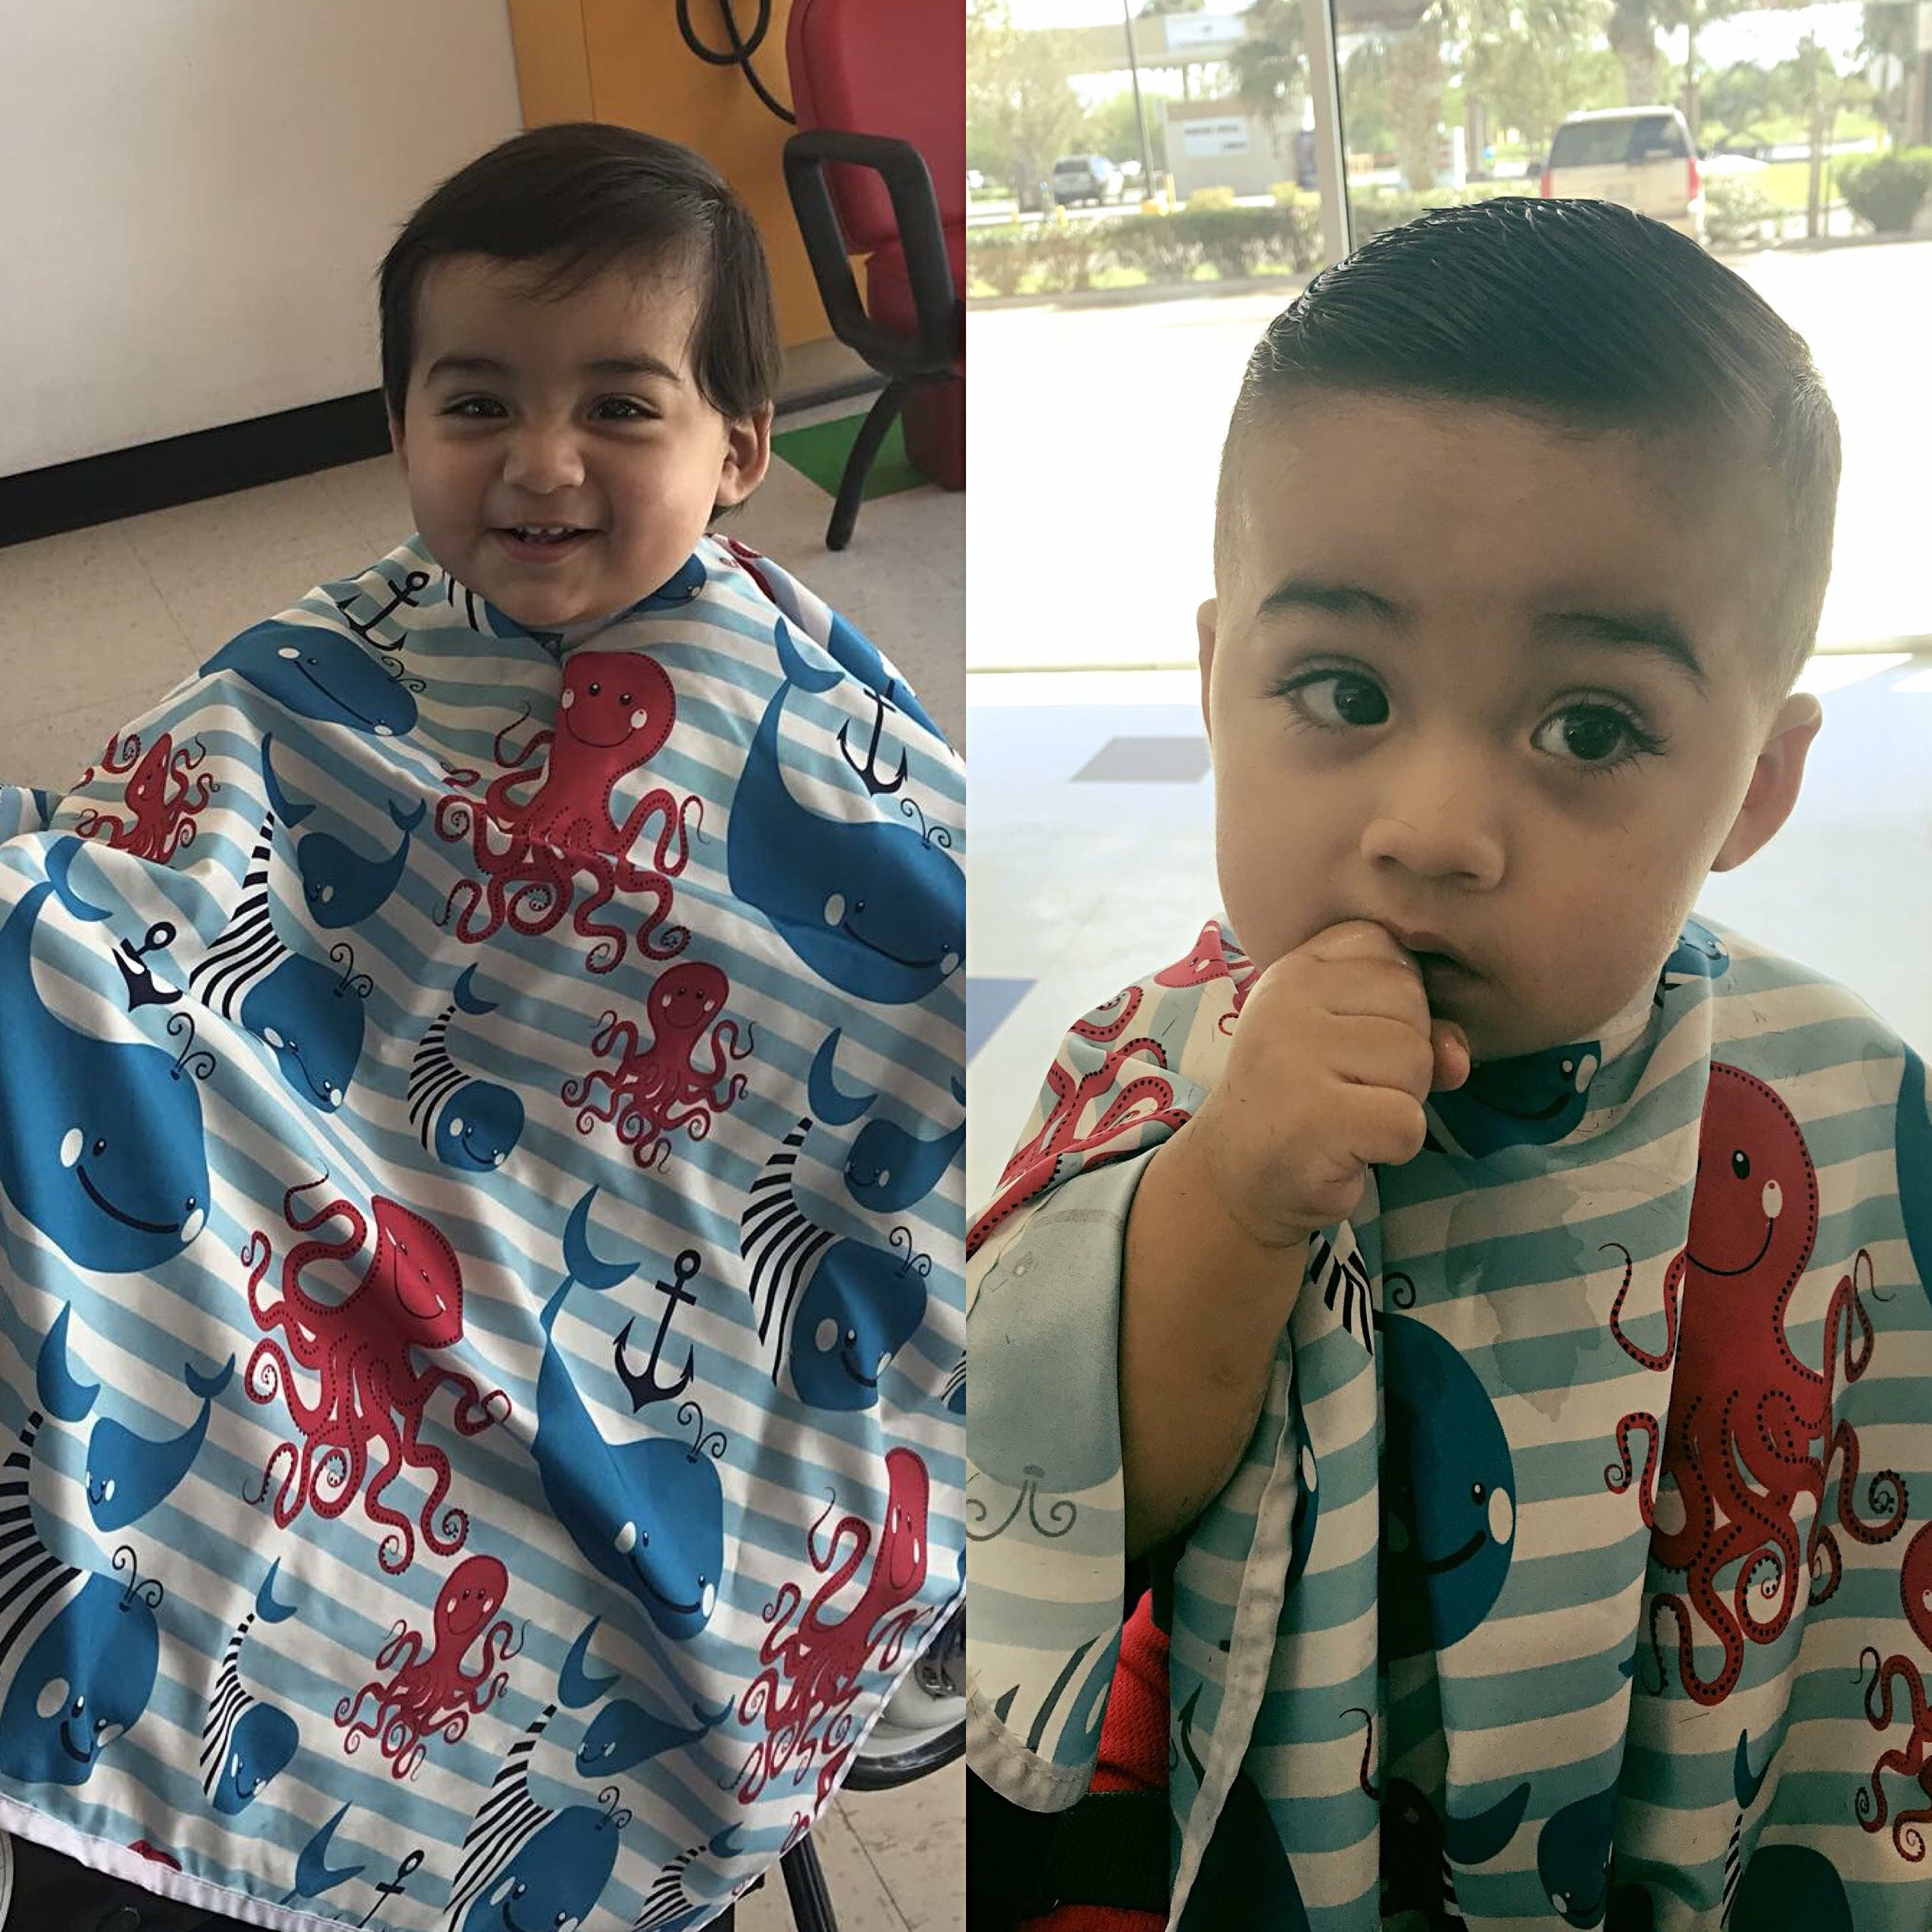 Pin on Hair Cuts/Styles for Little Boys